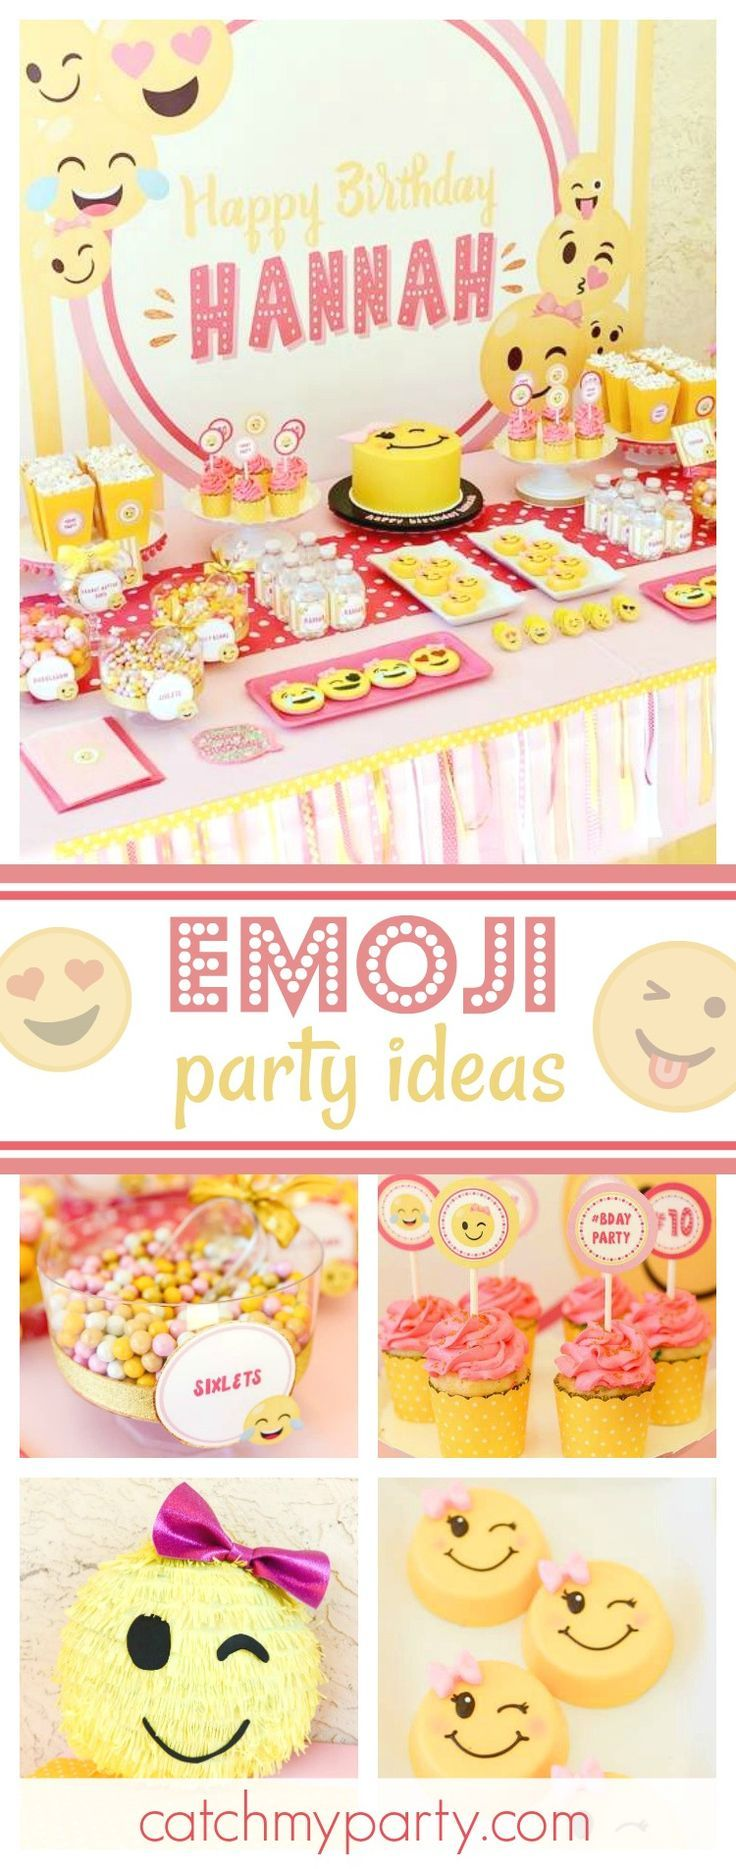 Check out this awesome Emoji birthday party! The dessert table and sweets treats are amazing!! See more party ideas and share yours at CatchMyParty.com